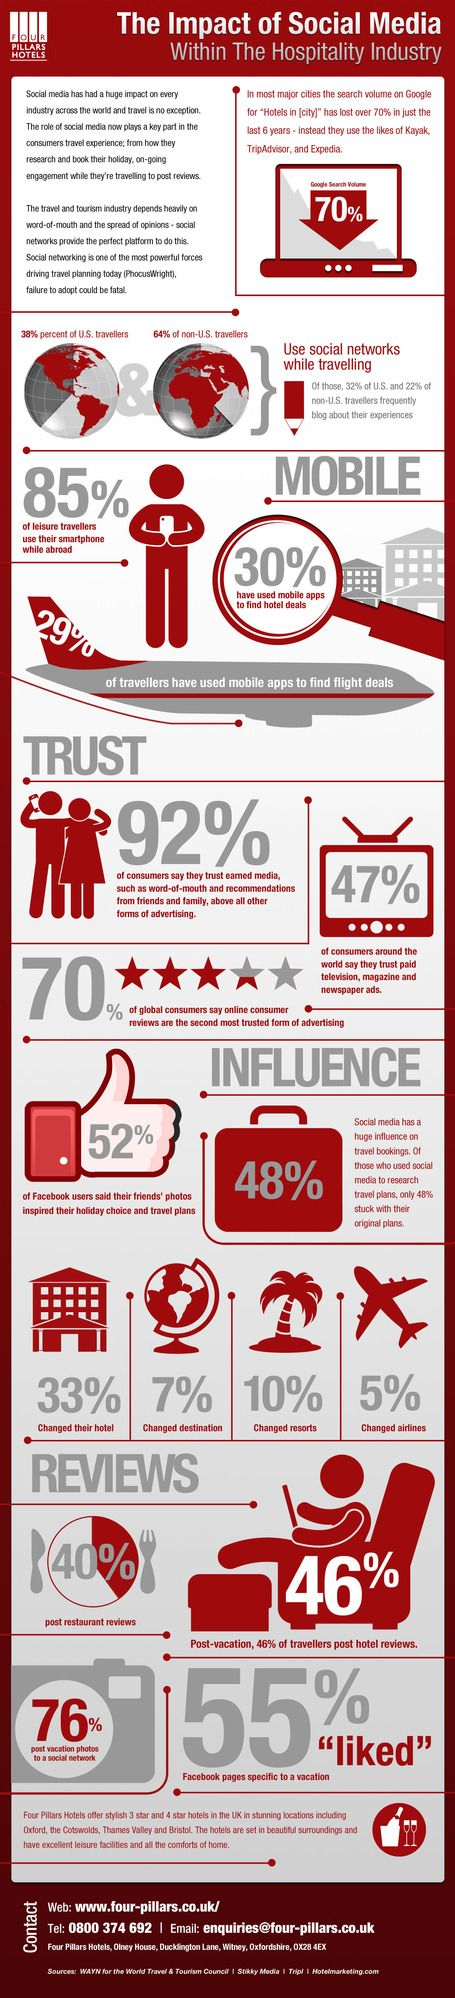 How Social Media is Impacting Travel & Every Industry Across the World [Infographic] | Content Curation, Social Business and Beyond | Scoop.it